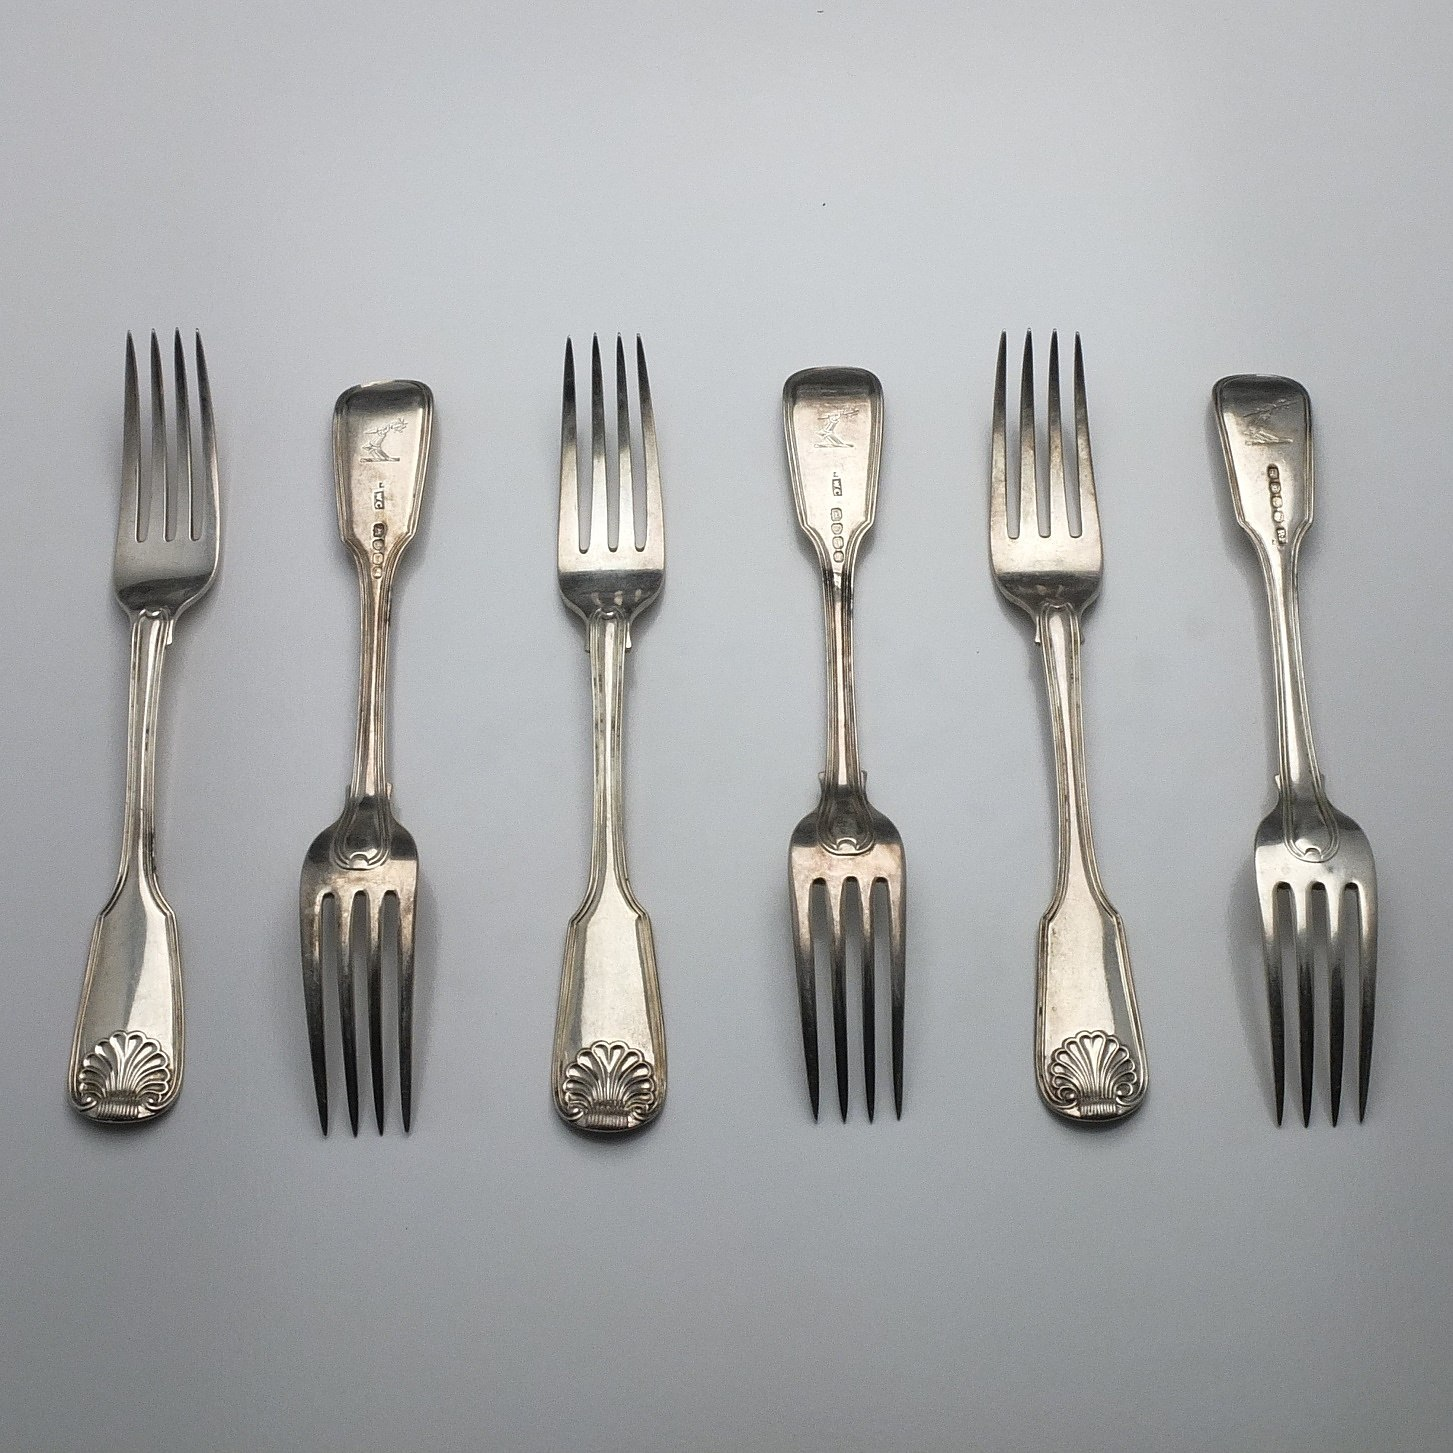 'Six Georgian Crested Sterling Silver Mains Forks, Including Four William Chawner II London 1831'